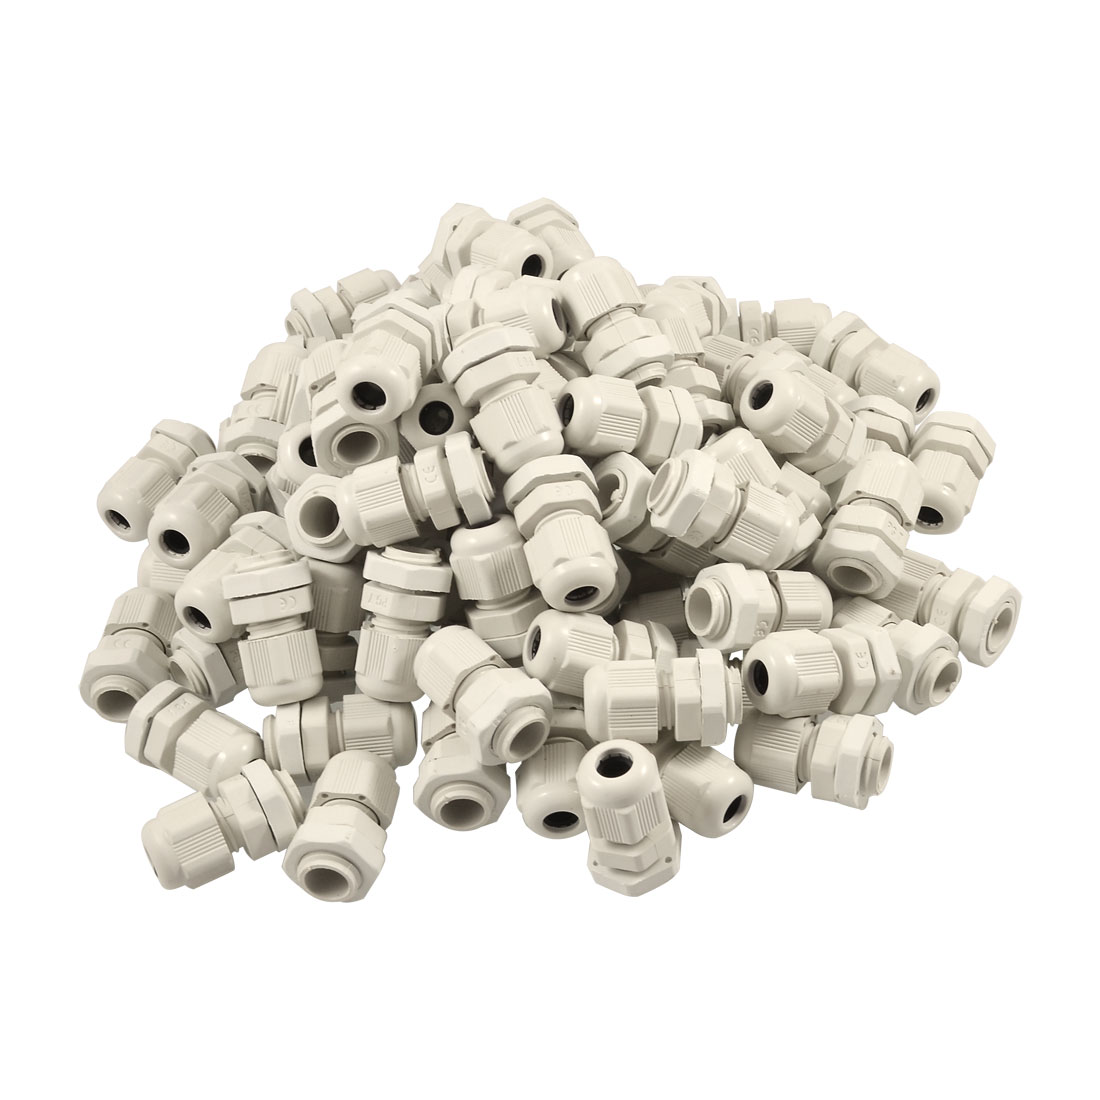 3mm-5mm Plastic Waterproof PG7 Cables Glands Connector White 100 Pcs